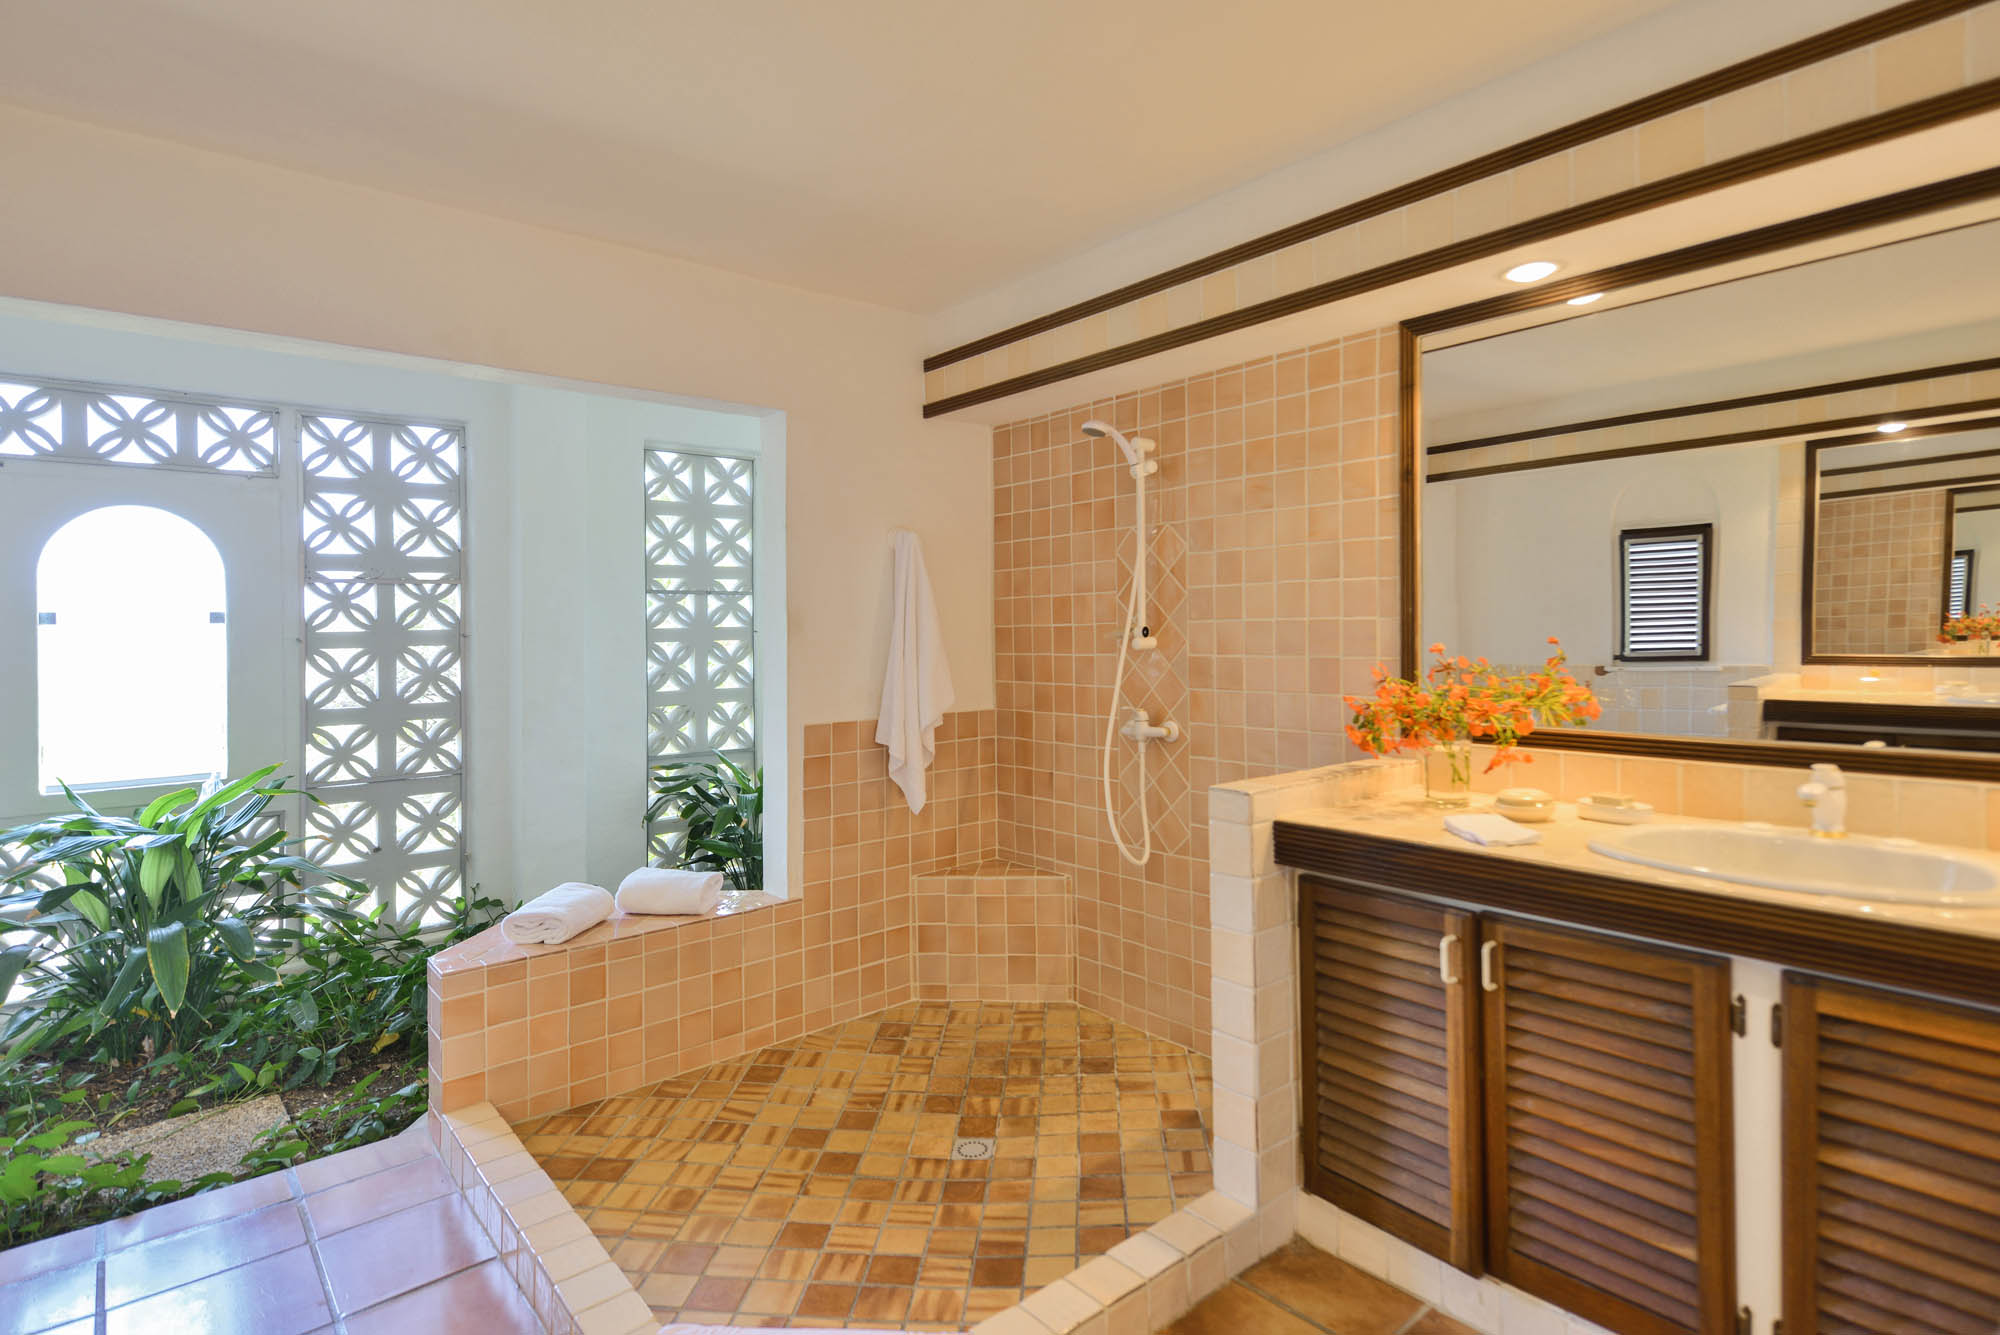 One of the ensuite bathrooms featuring a small garden and walk-in shower.